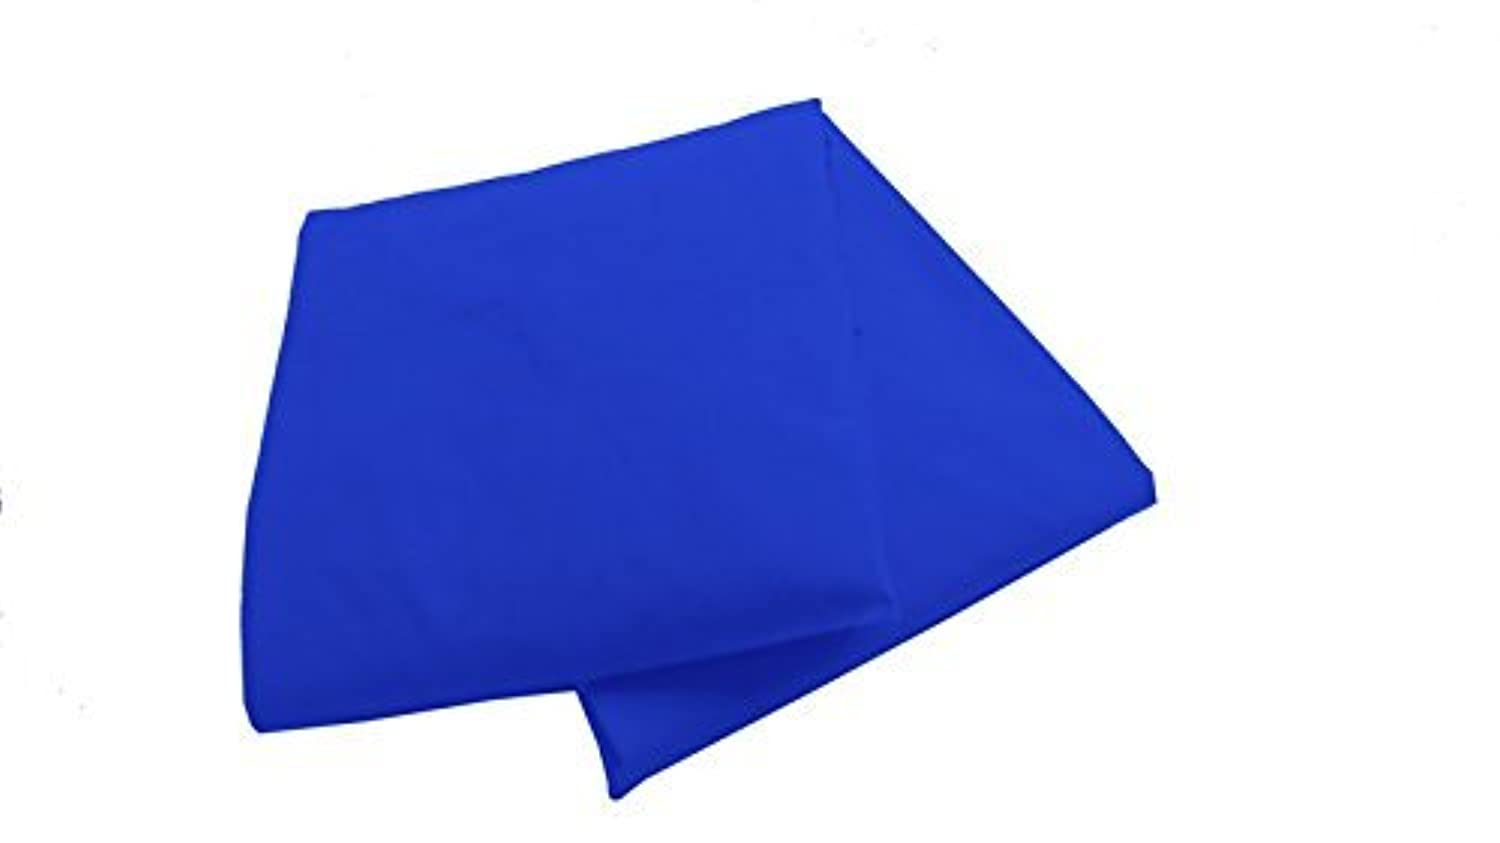 Baby Doll Bedding 2 Piece Cradle Sheets Royal Blue [並行輸入品]